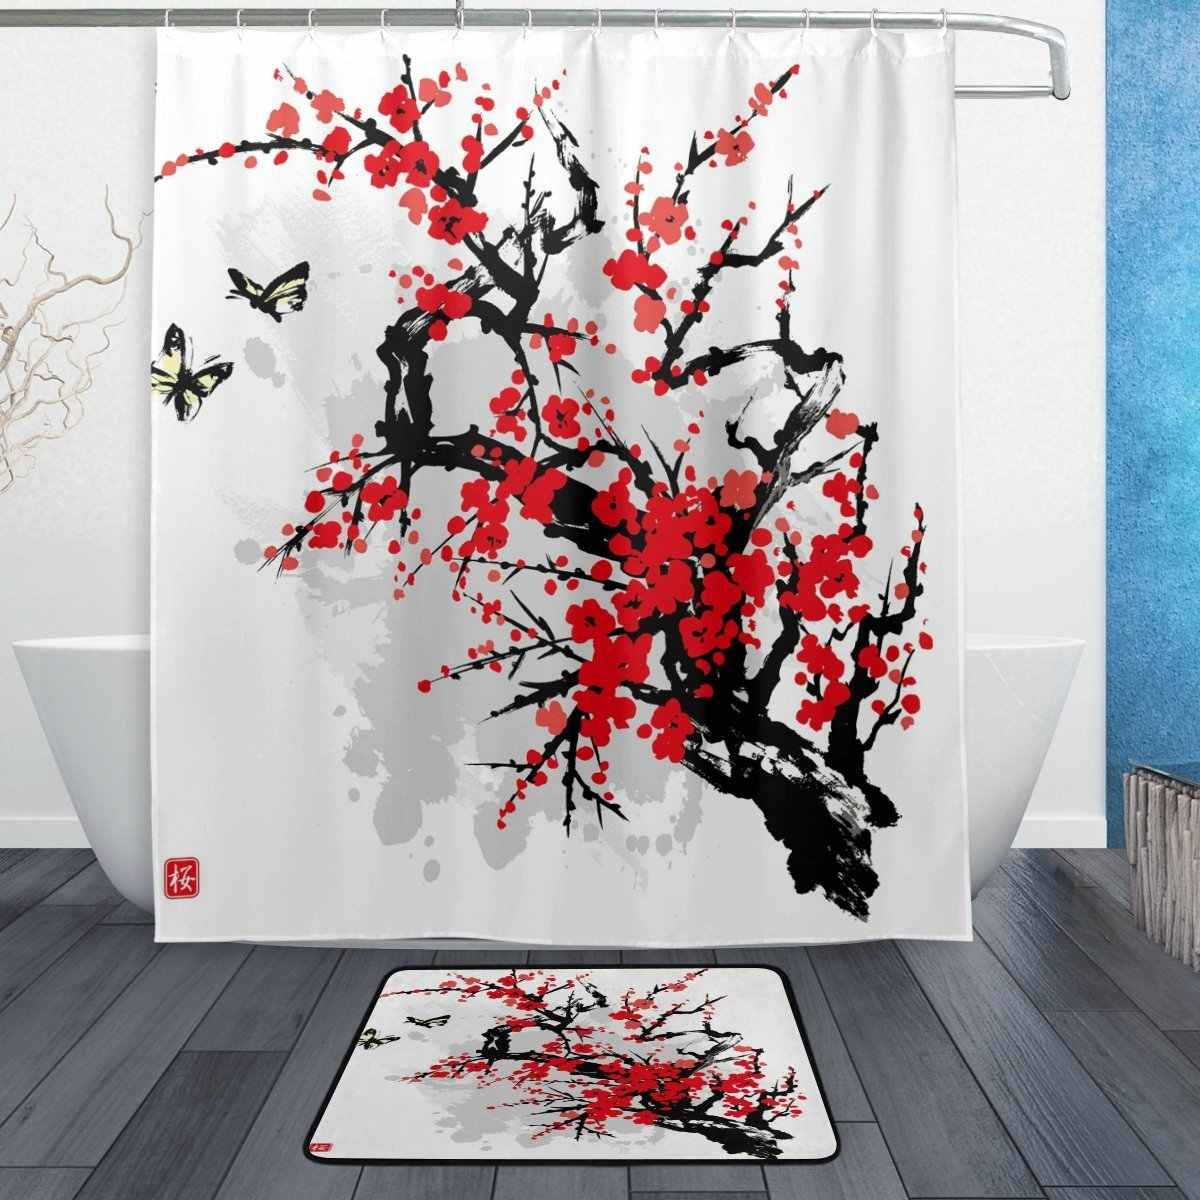 Asian Japanese Shower Curtain and Mat Set, Floral Flower Cherry Blossom Waterproof Fabric Bathroom Curtain